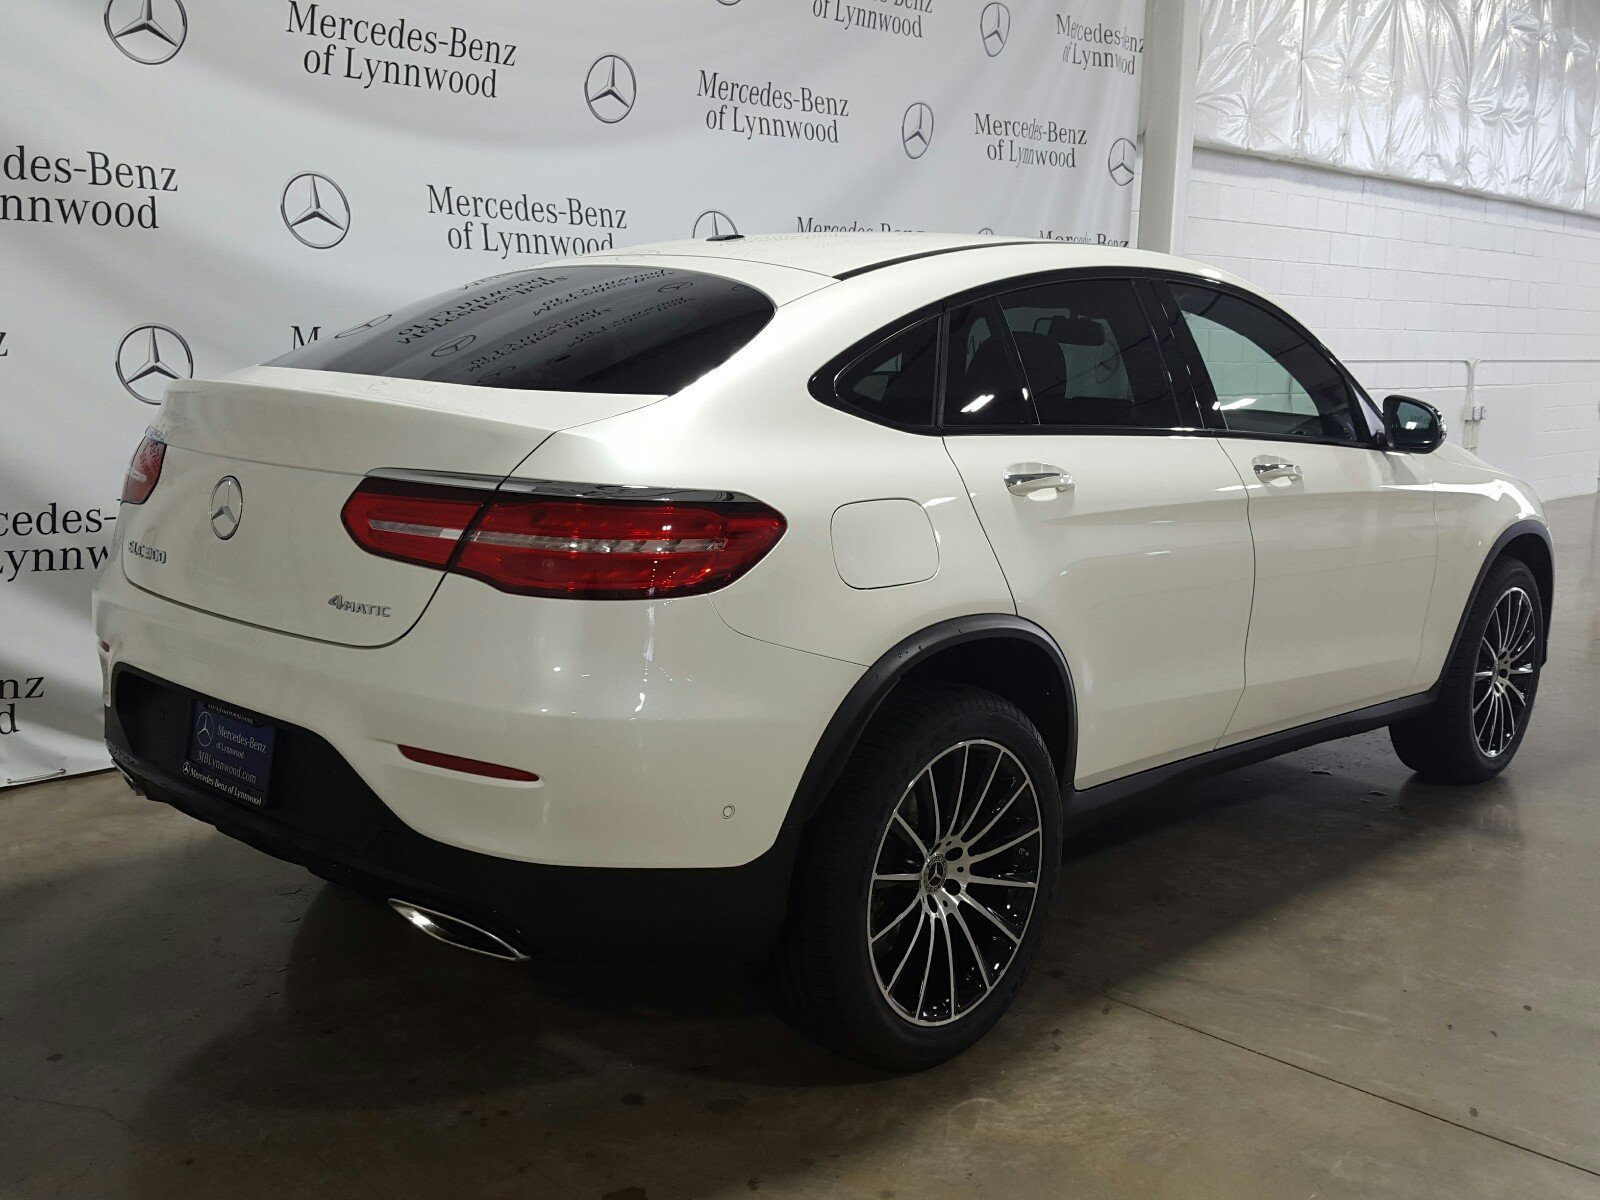 New 2019 Mercedes Benz GLC GLC 300 4MATIC Coupe Coupe in Lynnwood